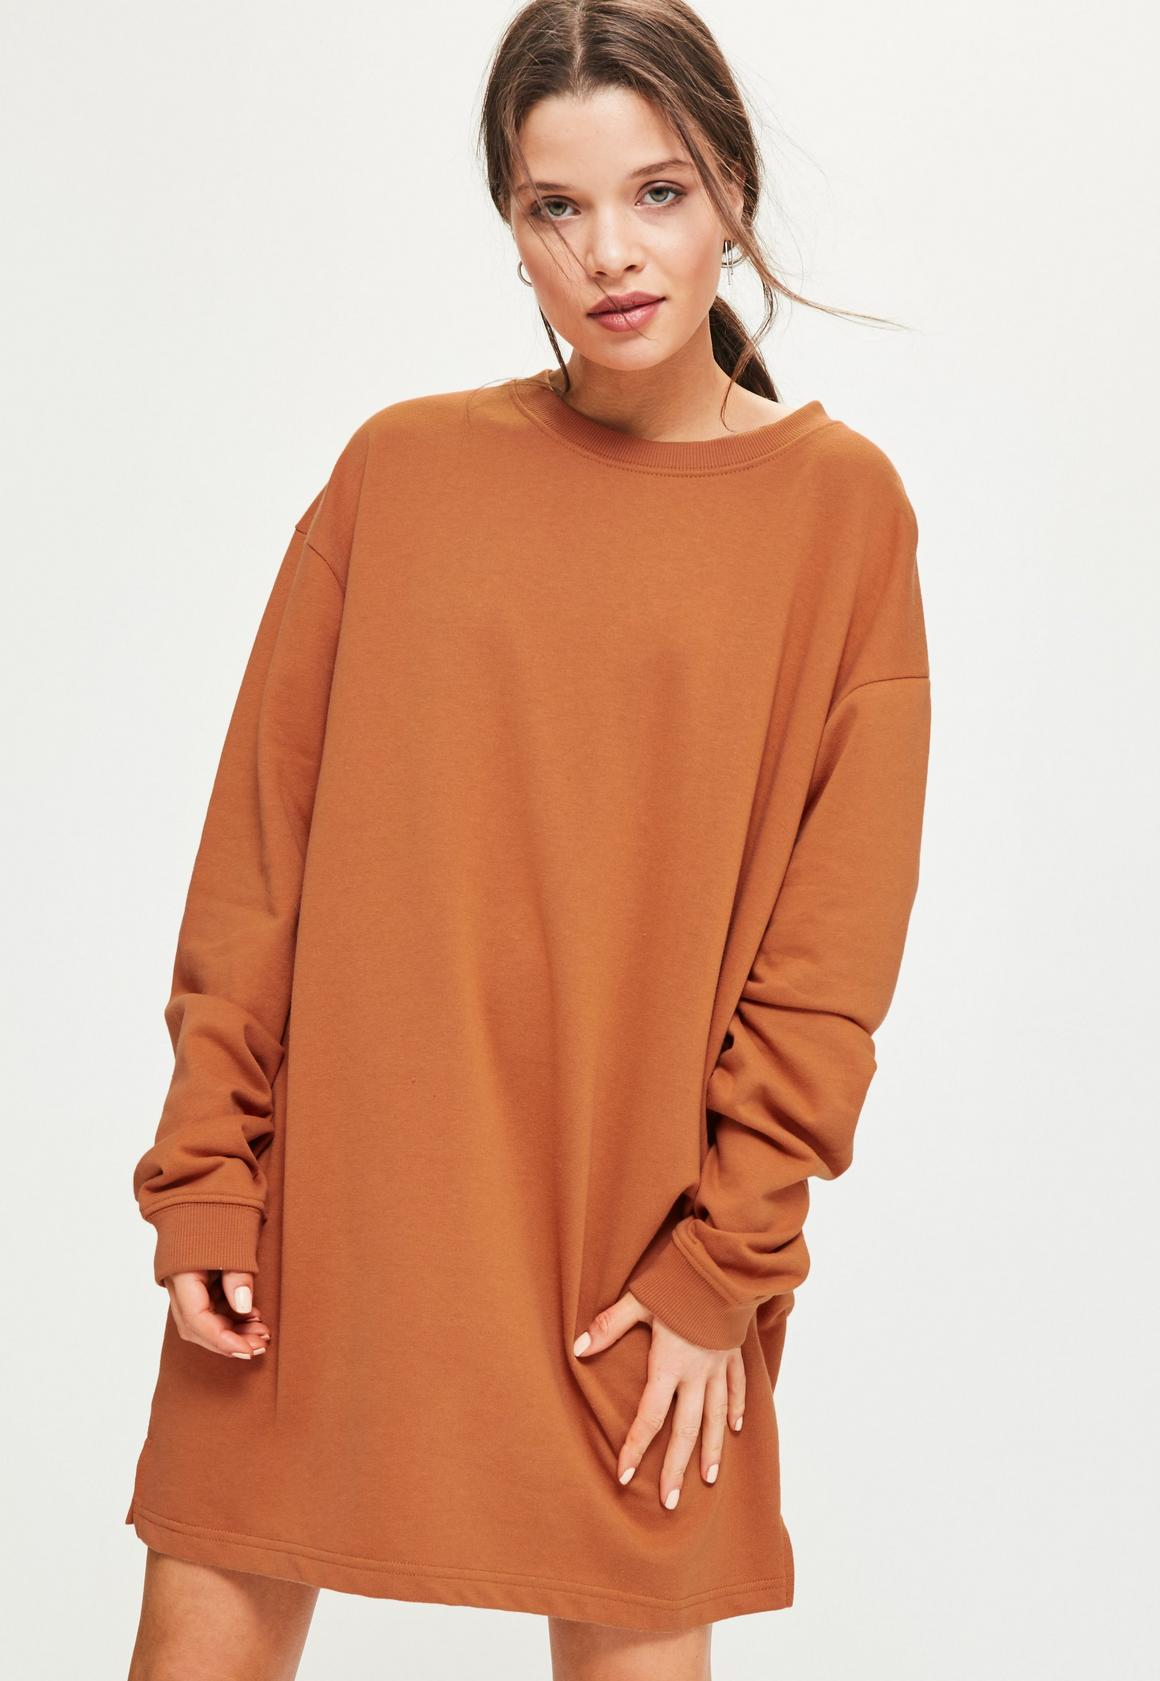 Orange Oversized Sweater Dress | Missguided